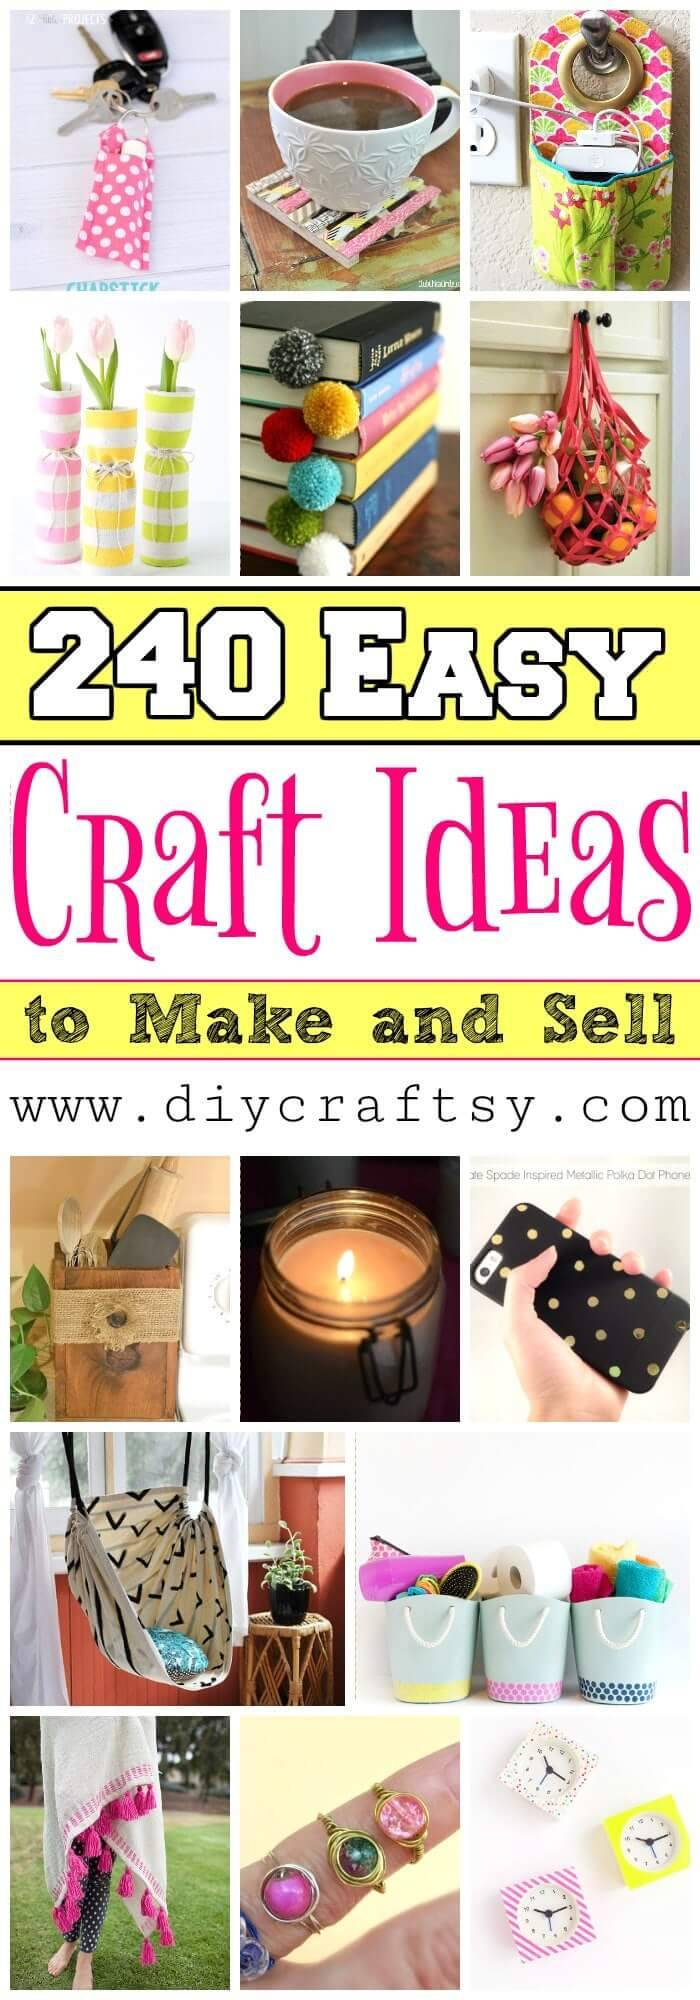 240 easy craft ideas to make and sell diy crafts for Diy project ideas to sell